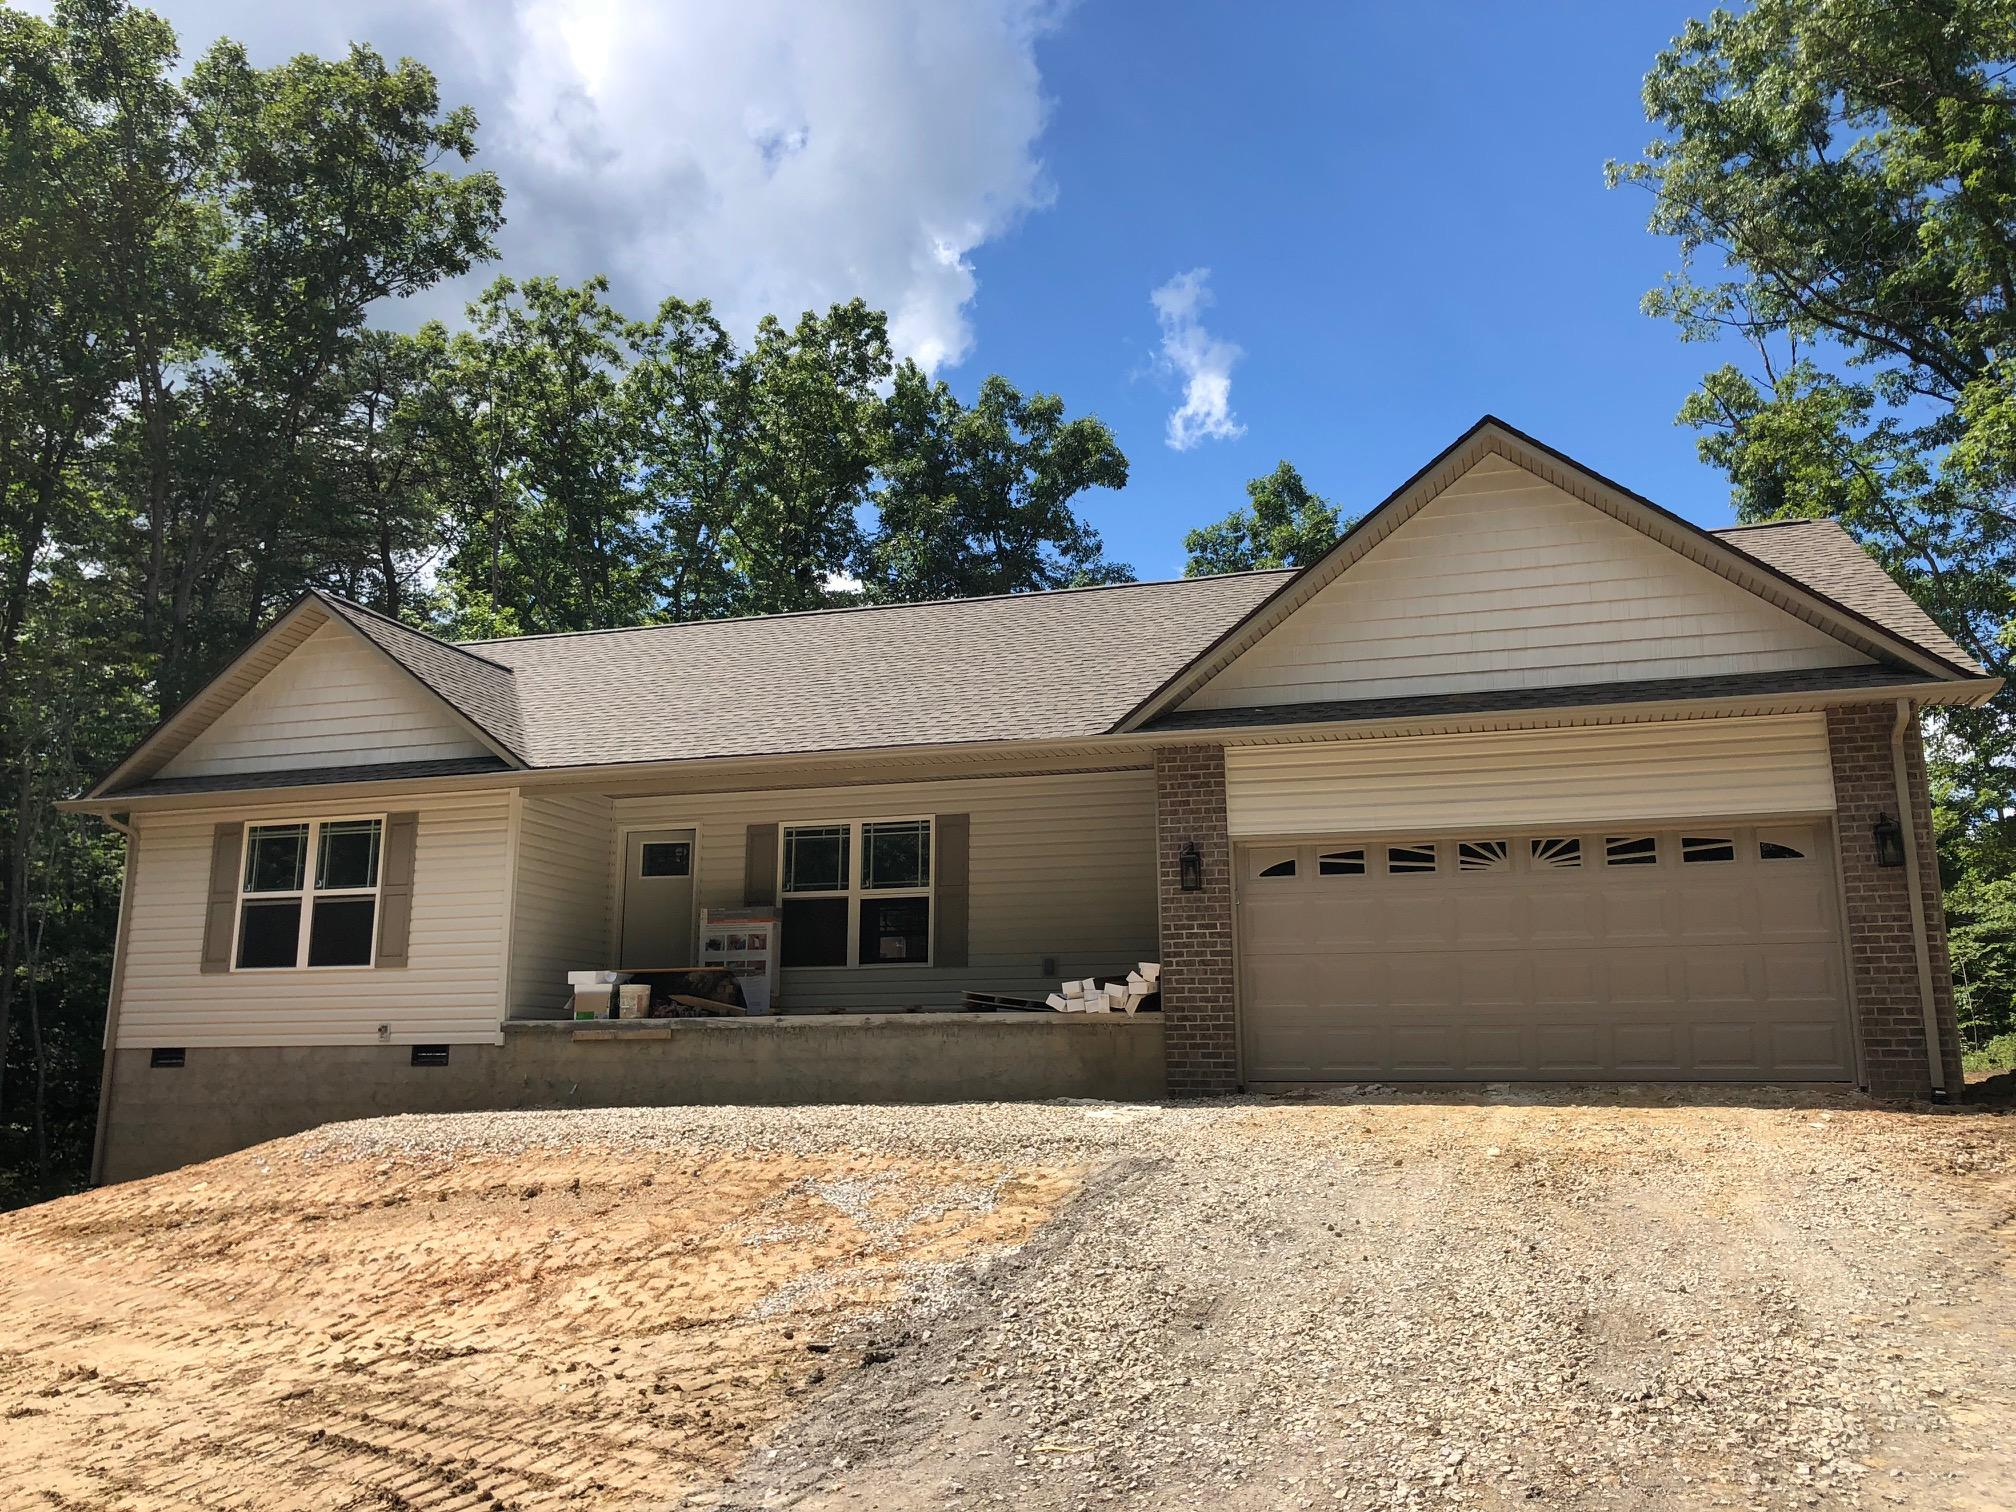 719 Taopi Lane, Crossville, Tennessee 38572, 2 Bedrooms Bedrooms, ,2 BathroomsBathrooms,Single Family,For Sale,Taopi,1048231